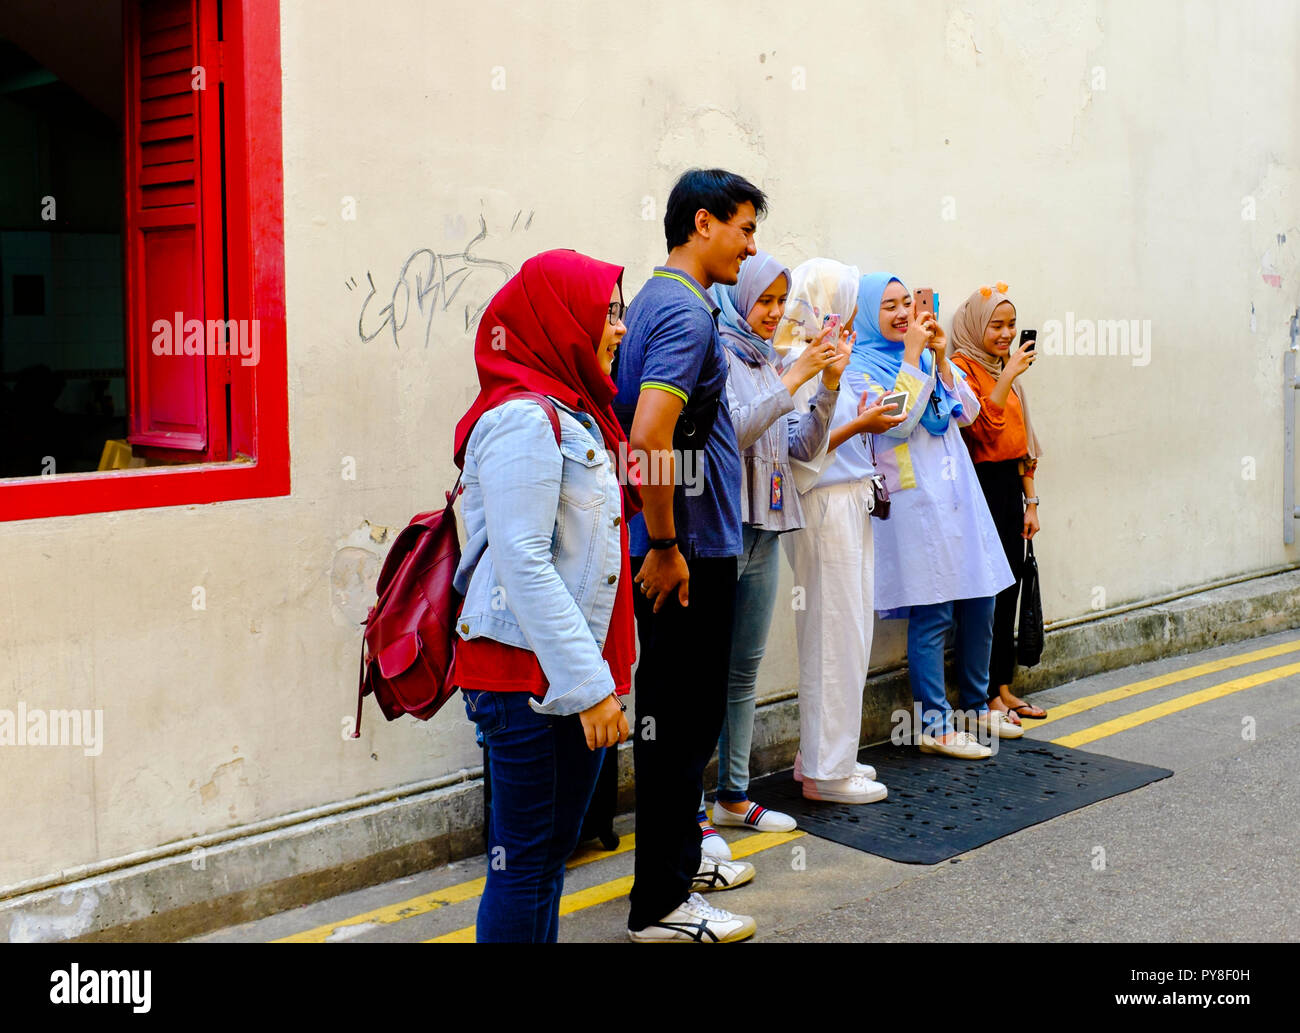 Group of smiling young people including muslim girls wearing hijabs using phones on street in Singapore - Stock Image